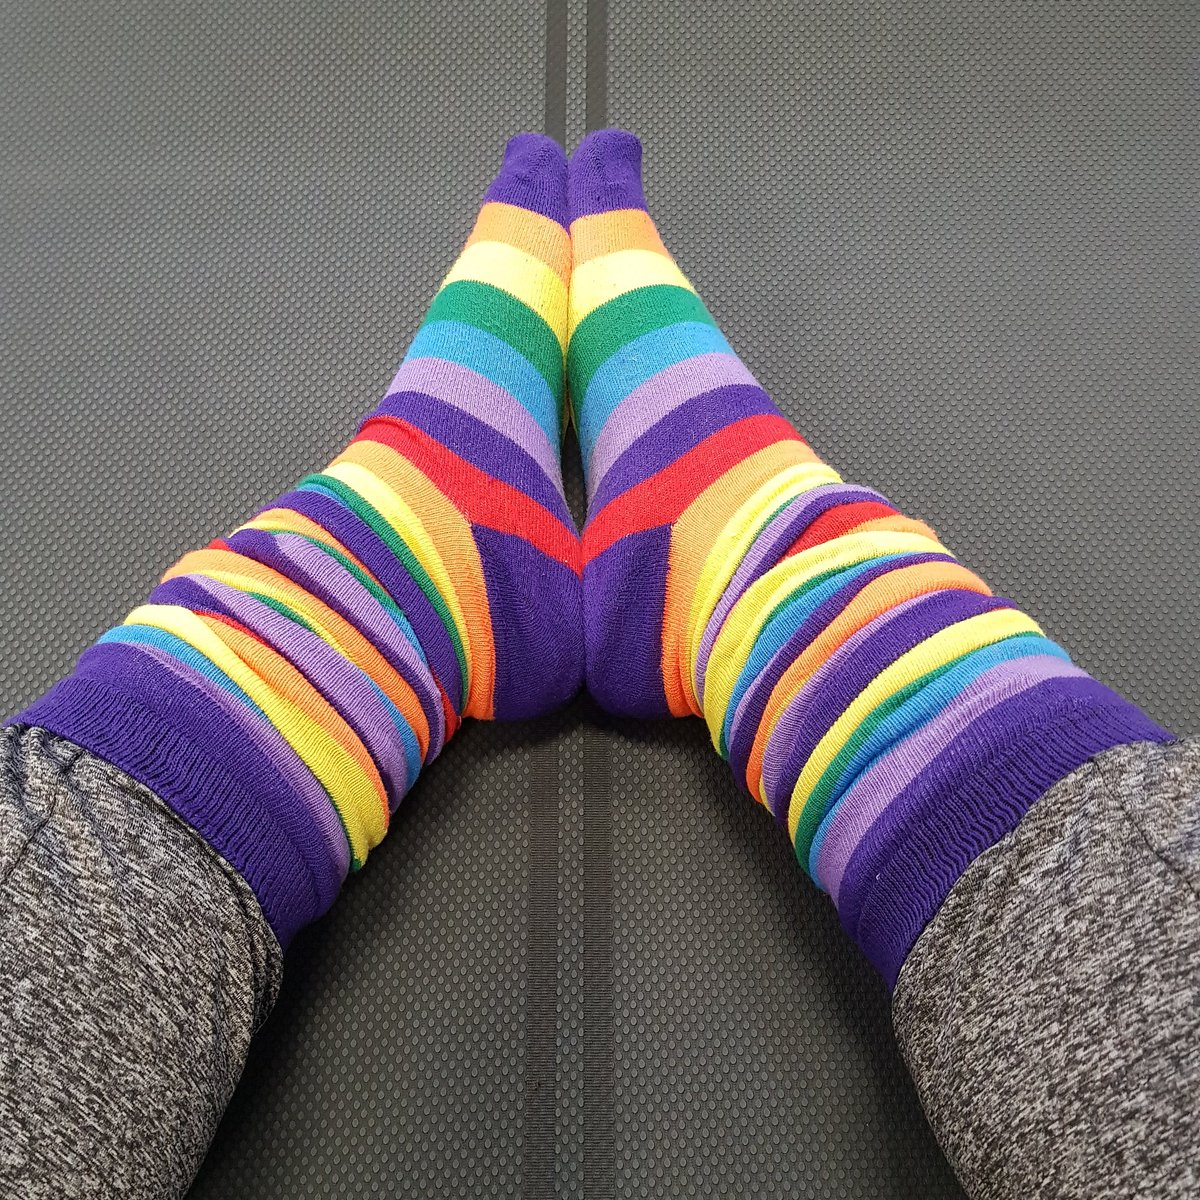 Awesome workout this morning and now bringing a bit of colour to pilates! 🧘♀️💚 #tuesdayvibes #workout